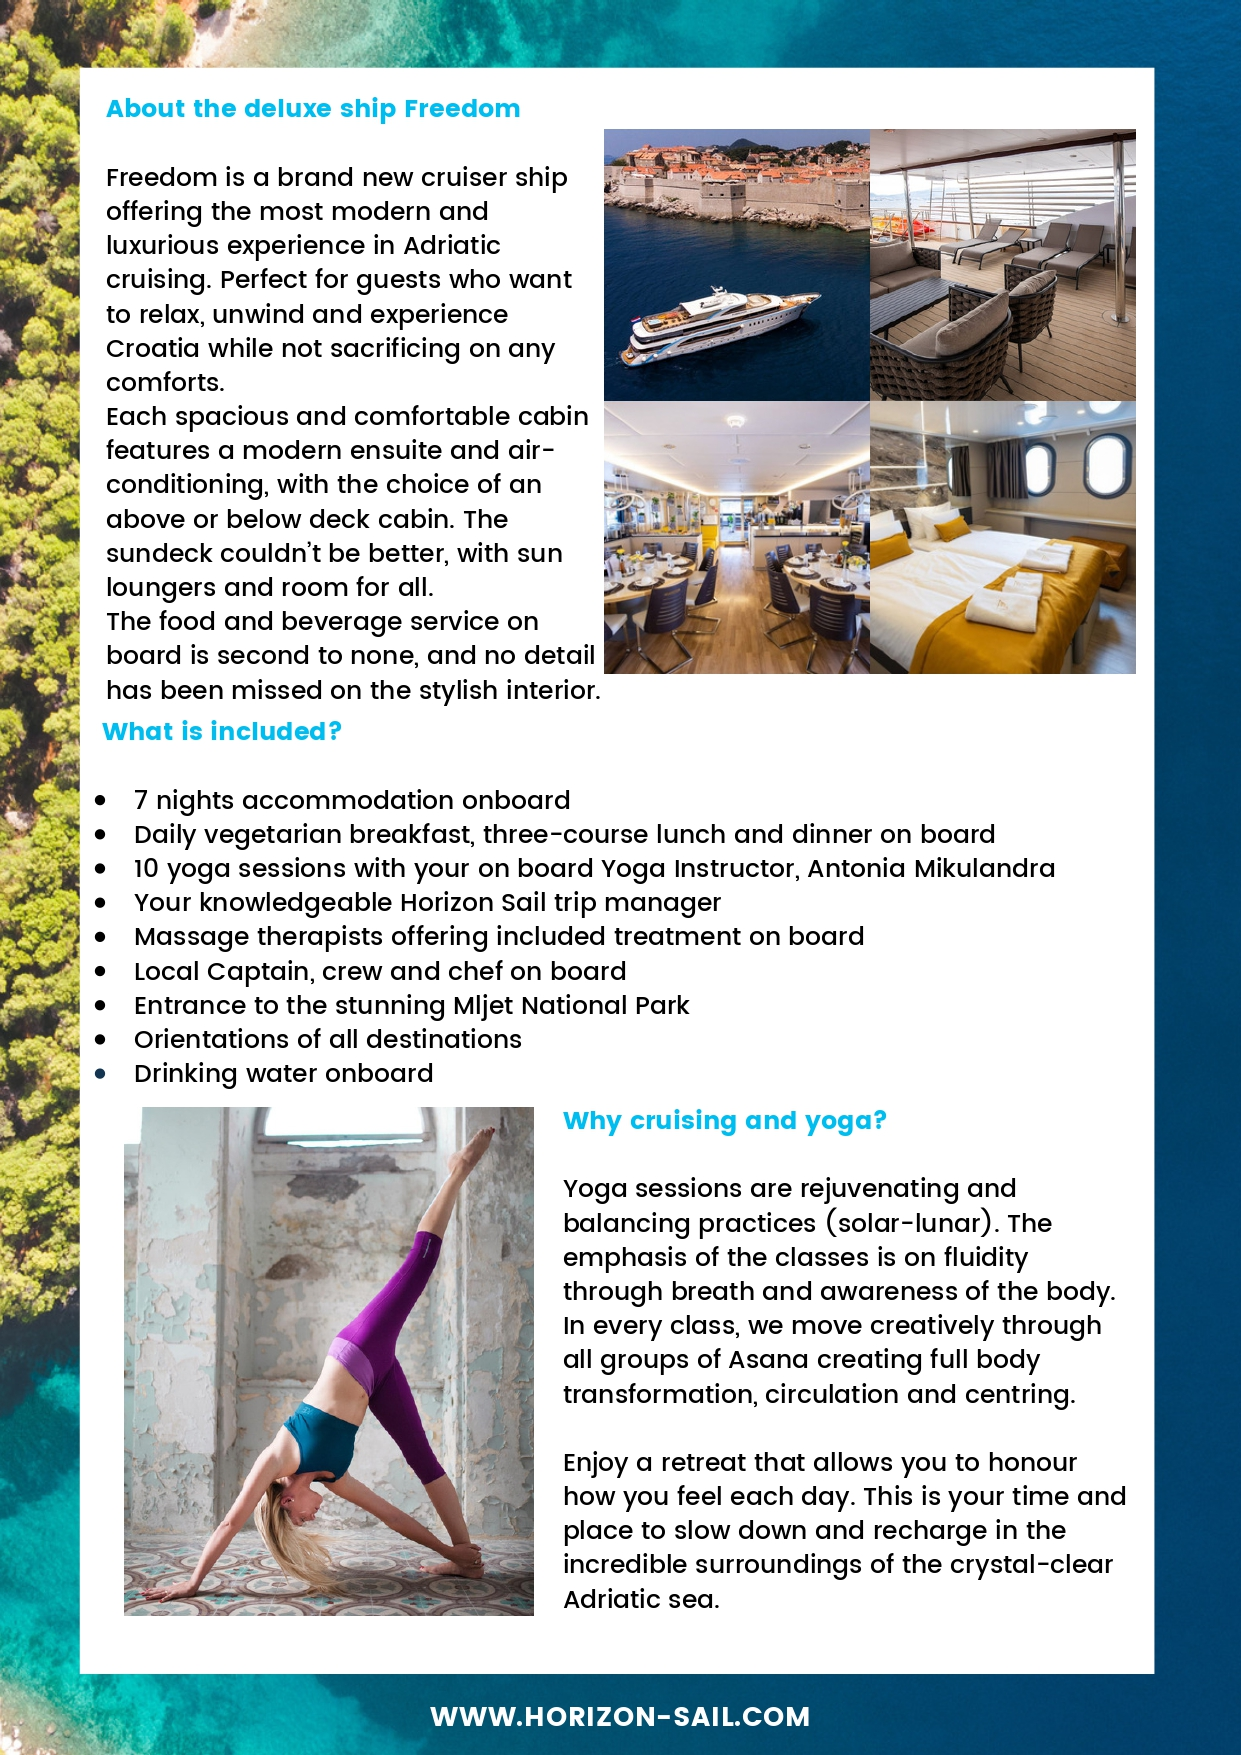 bodyflow-yoga-cruise-2019_pages-to-jpg-0003